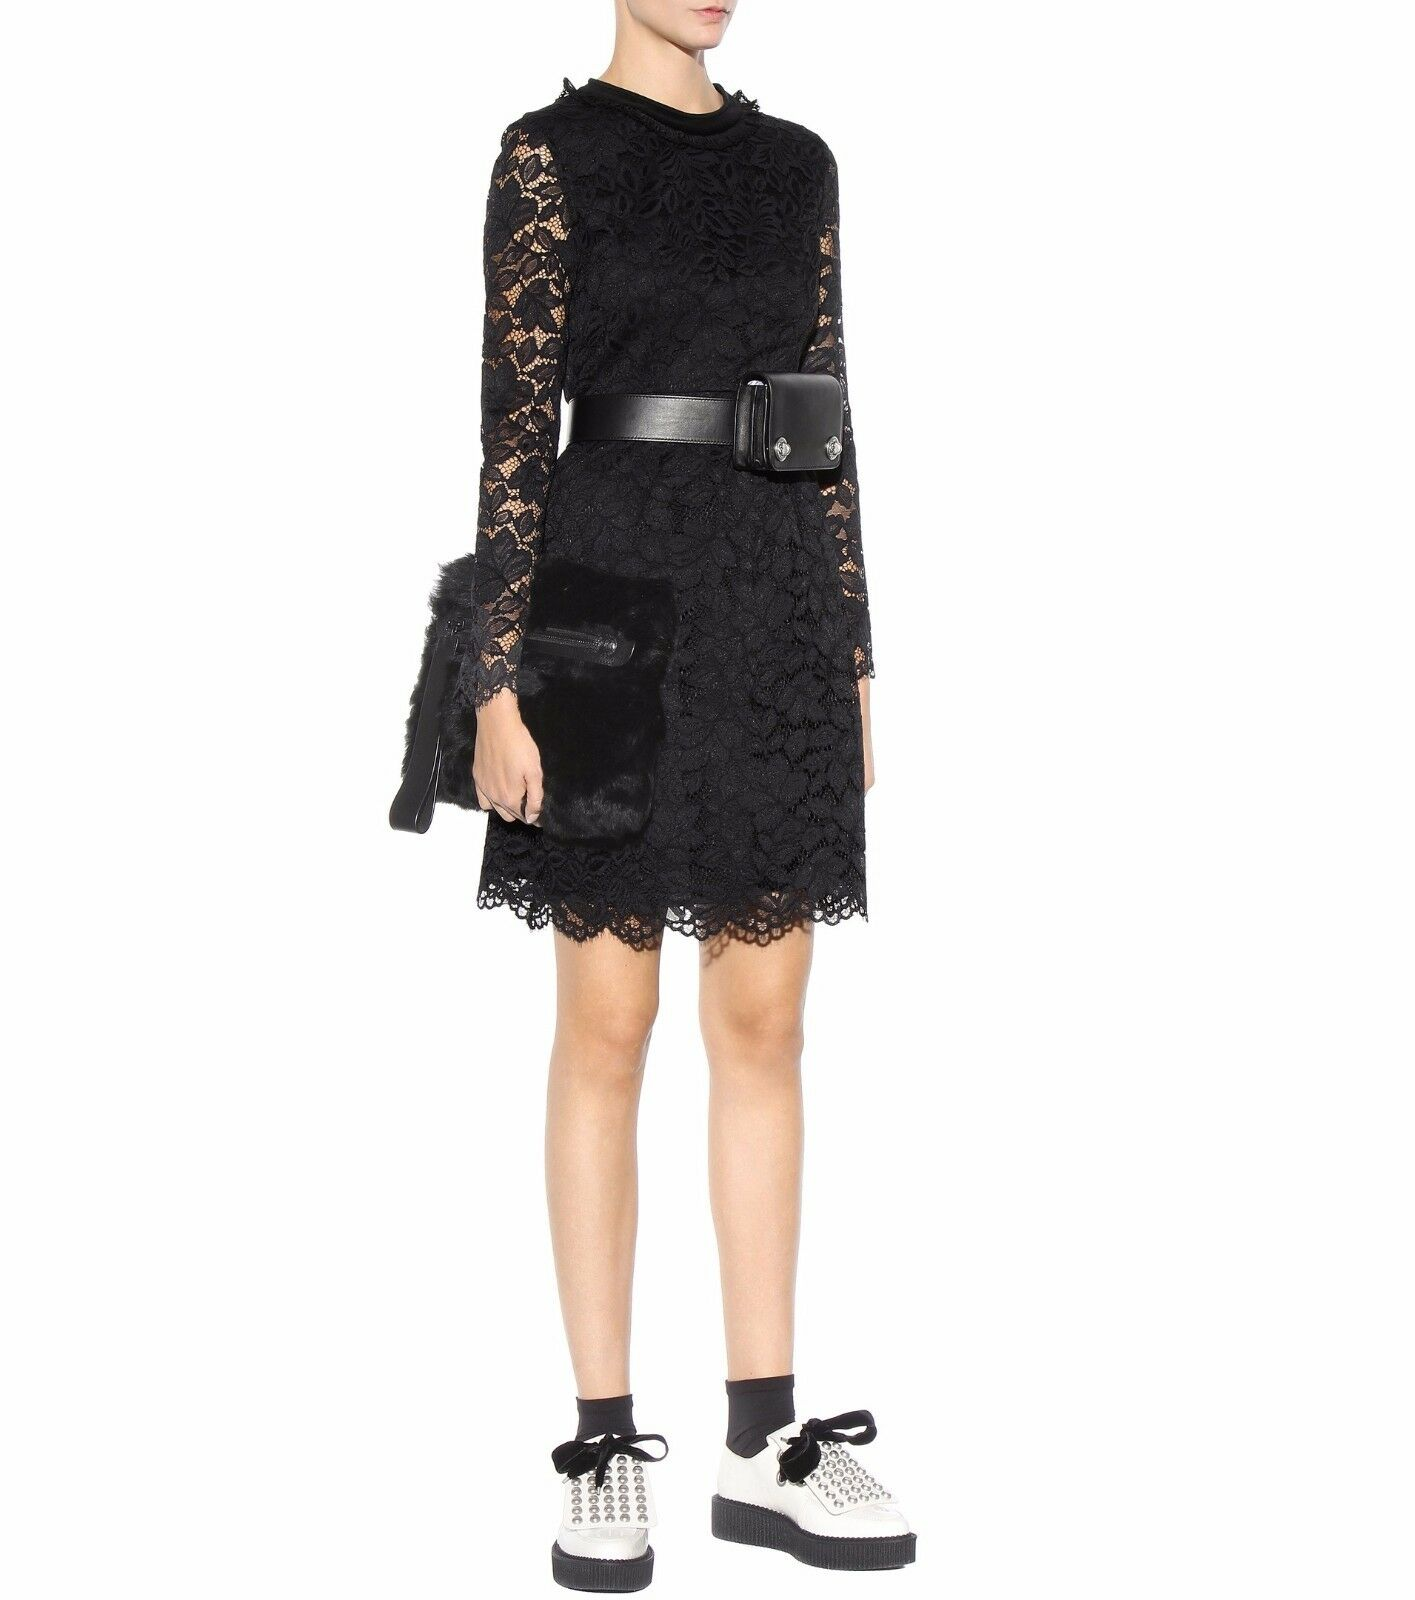 MARC BY MARC JACOBS 'Isabella' Lace Fit & & & Flare Dress ( Size 0) 8328d6